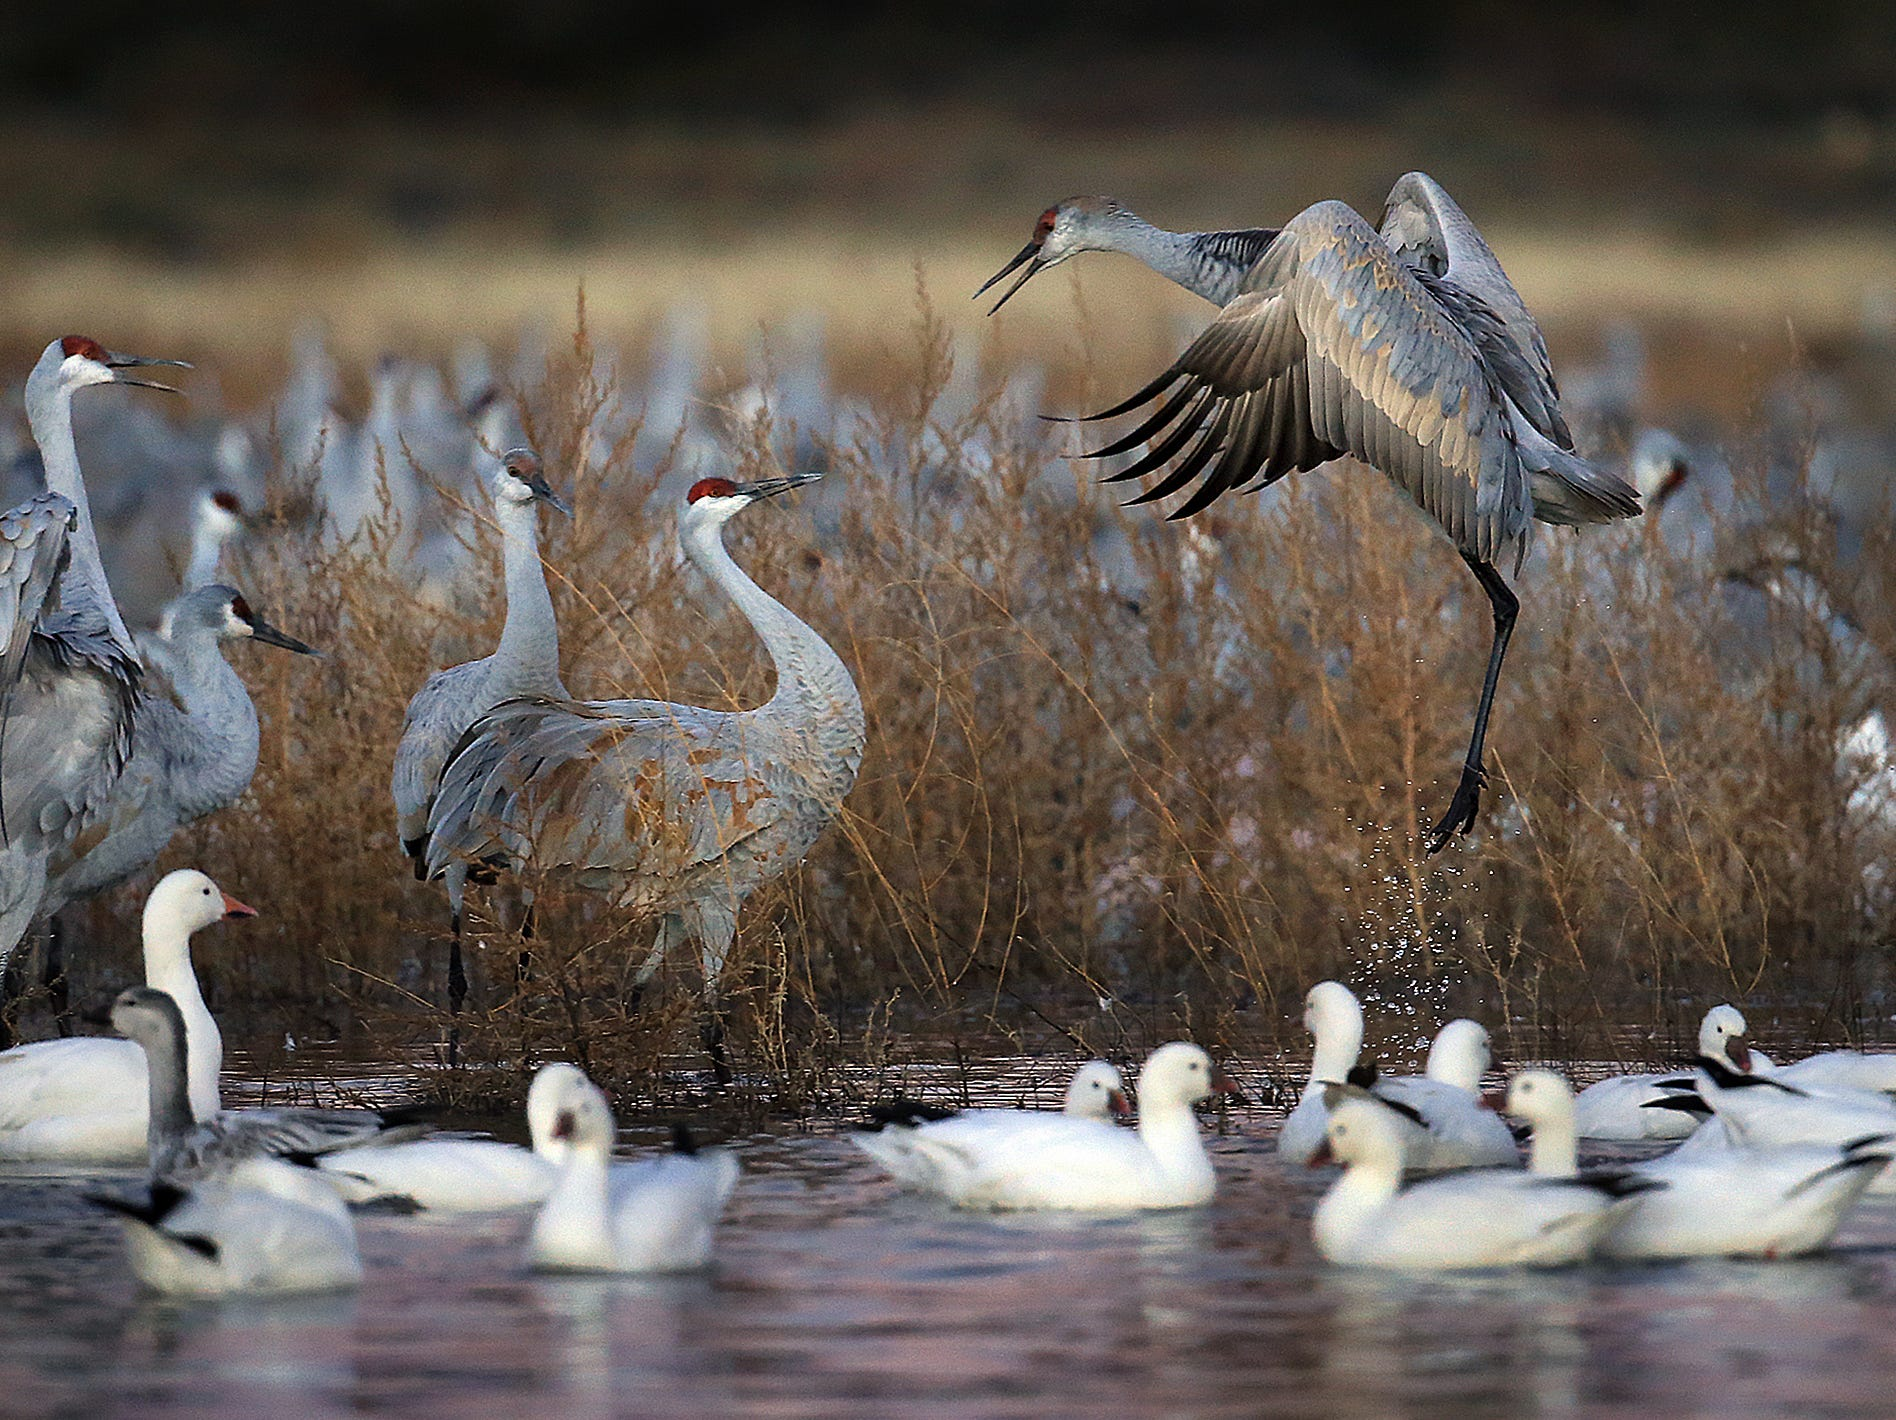 A Sandhill Crane takes flight at the Crane Pond on the north end of Bosque del Apache National Wildlife Refuge. Tens of thousands of cranes us the bosque as a resting spot during their annual migration. Snow Geese mix with the cranes after their morning fly in.